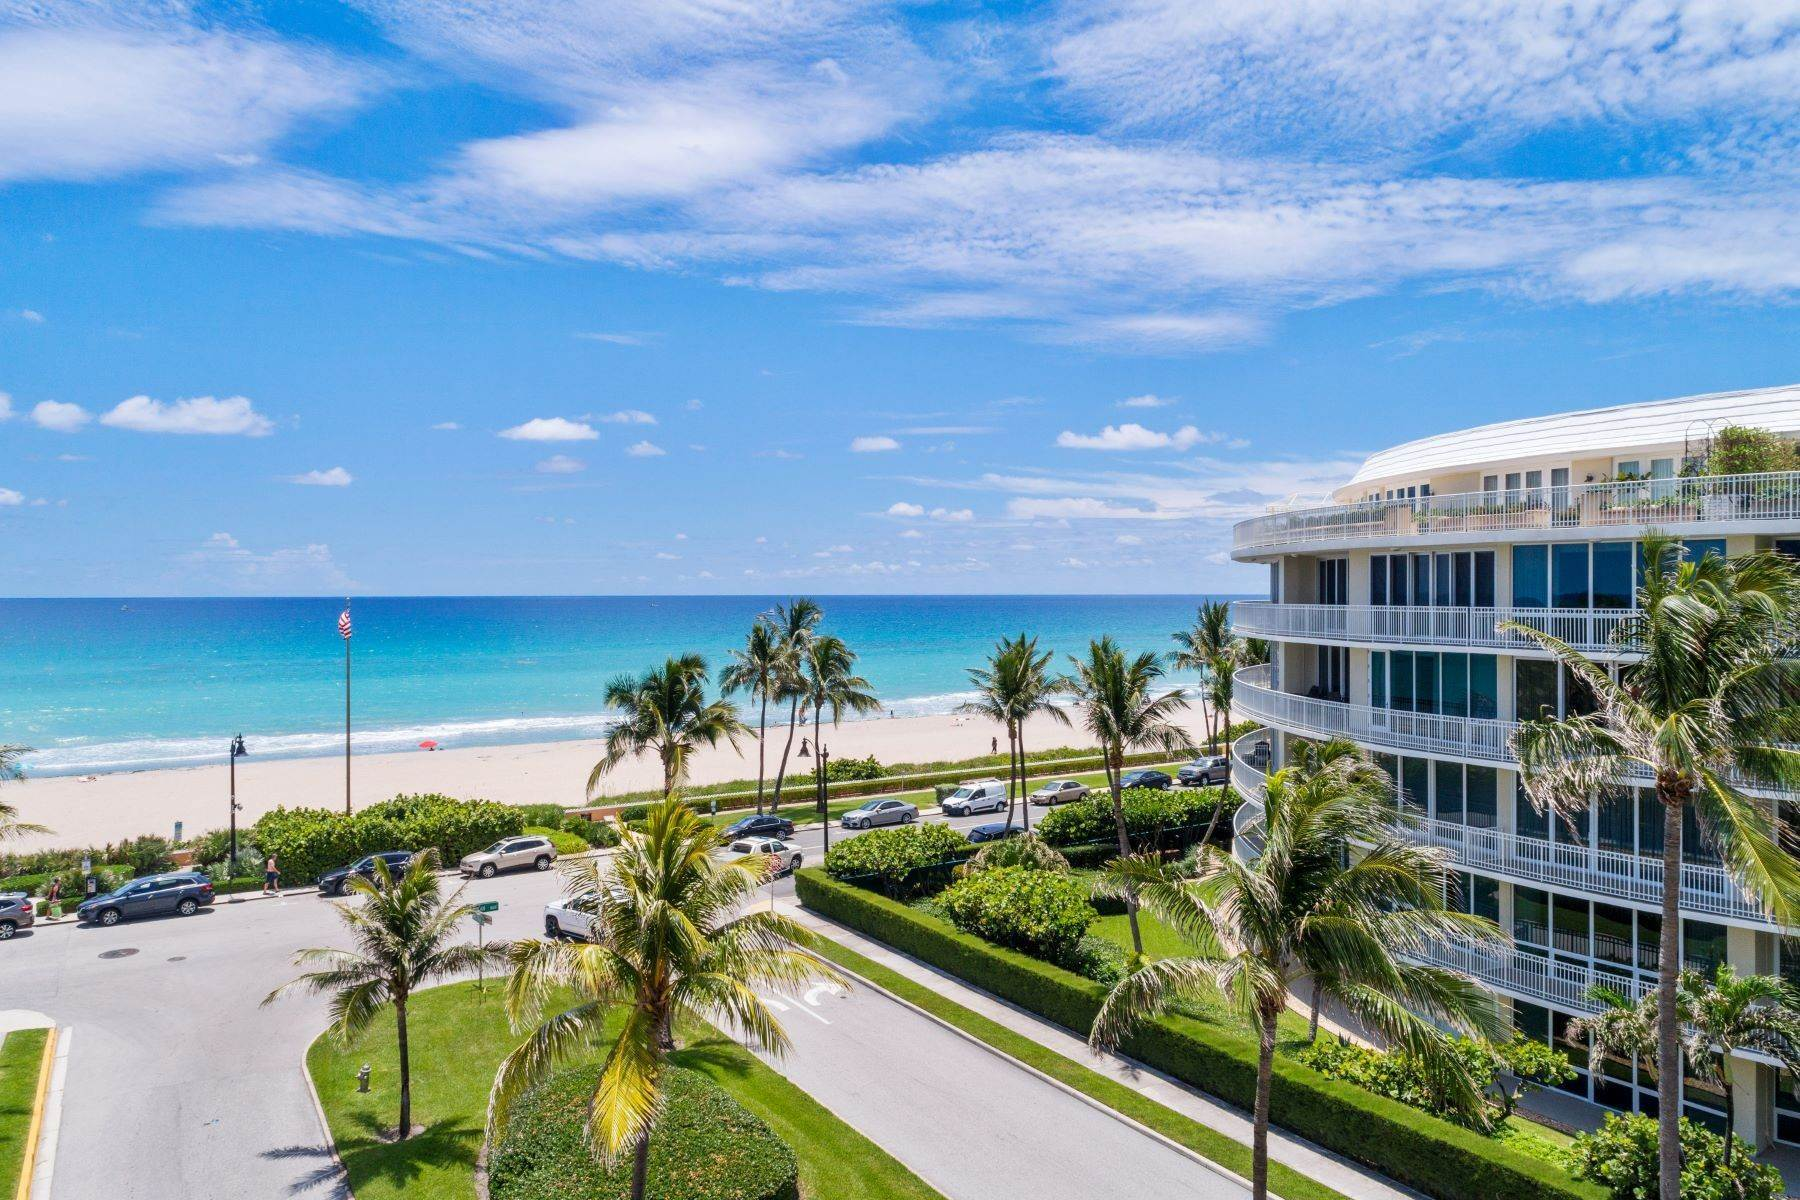 Condominiums for Sale at Palm Beach Oceanfront In Town Condo 100 Royal Palm Way B3 Palm Beach, Florida 33480 United States